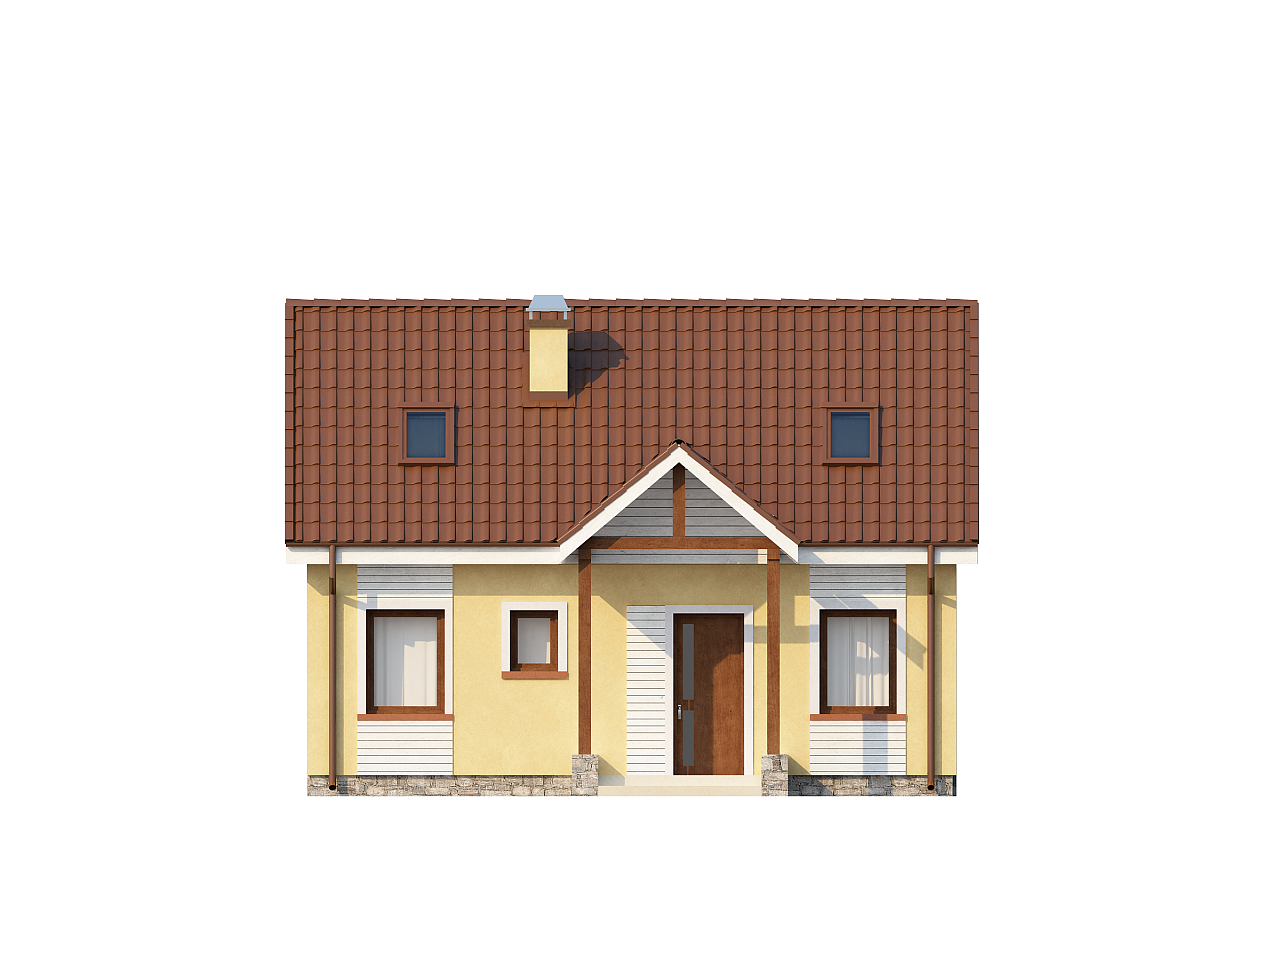 If you're looking to downsize, we have some small house with floor plans you'll want to see! Our small houses are under 79 square meters, but they still include everything you need to have a comfortable, complete home. These houses consist of 1-2 bedrooms, 1 bathroom, 1 kitchen, and a living room.